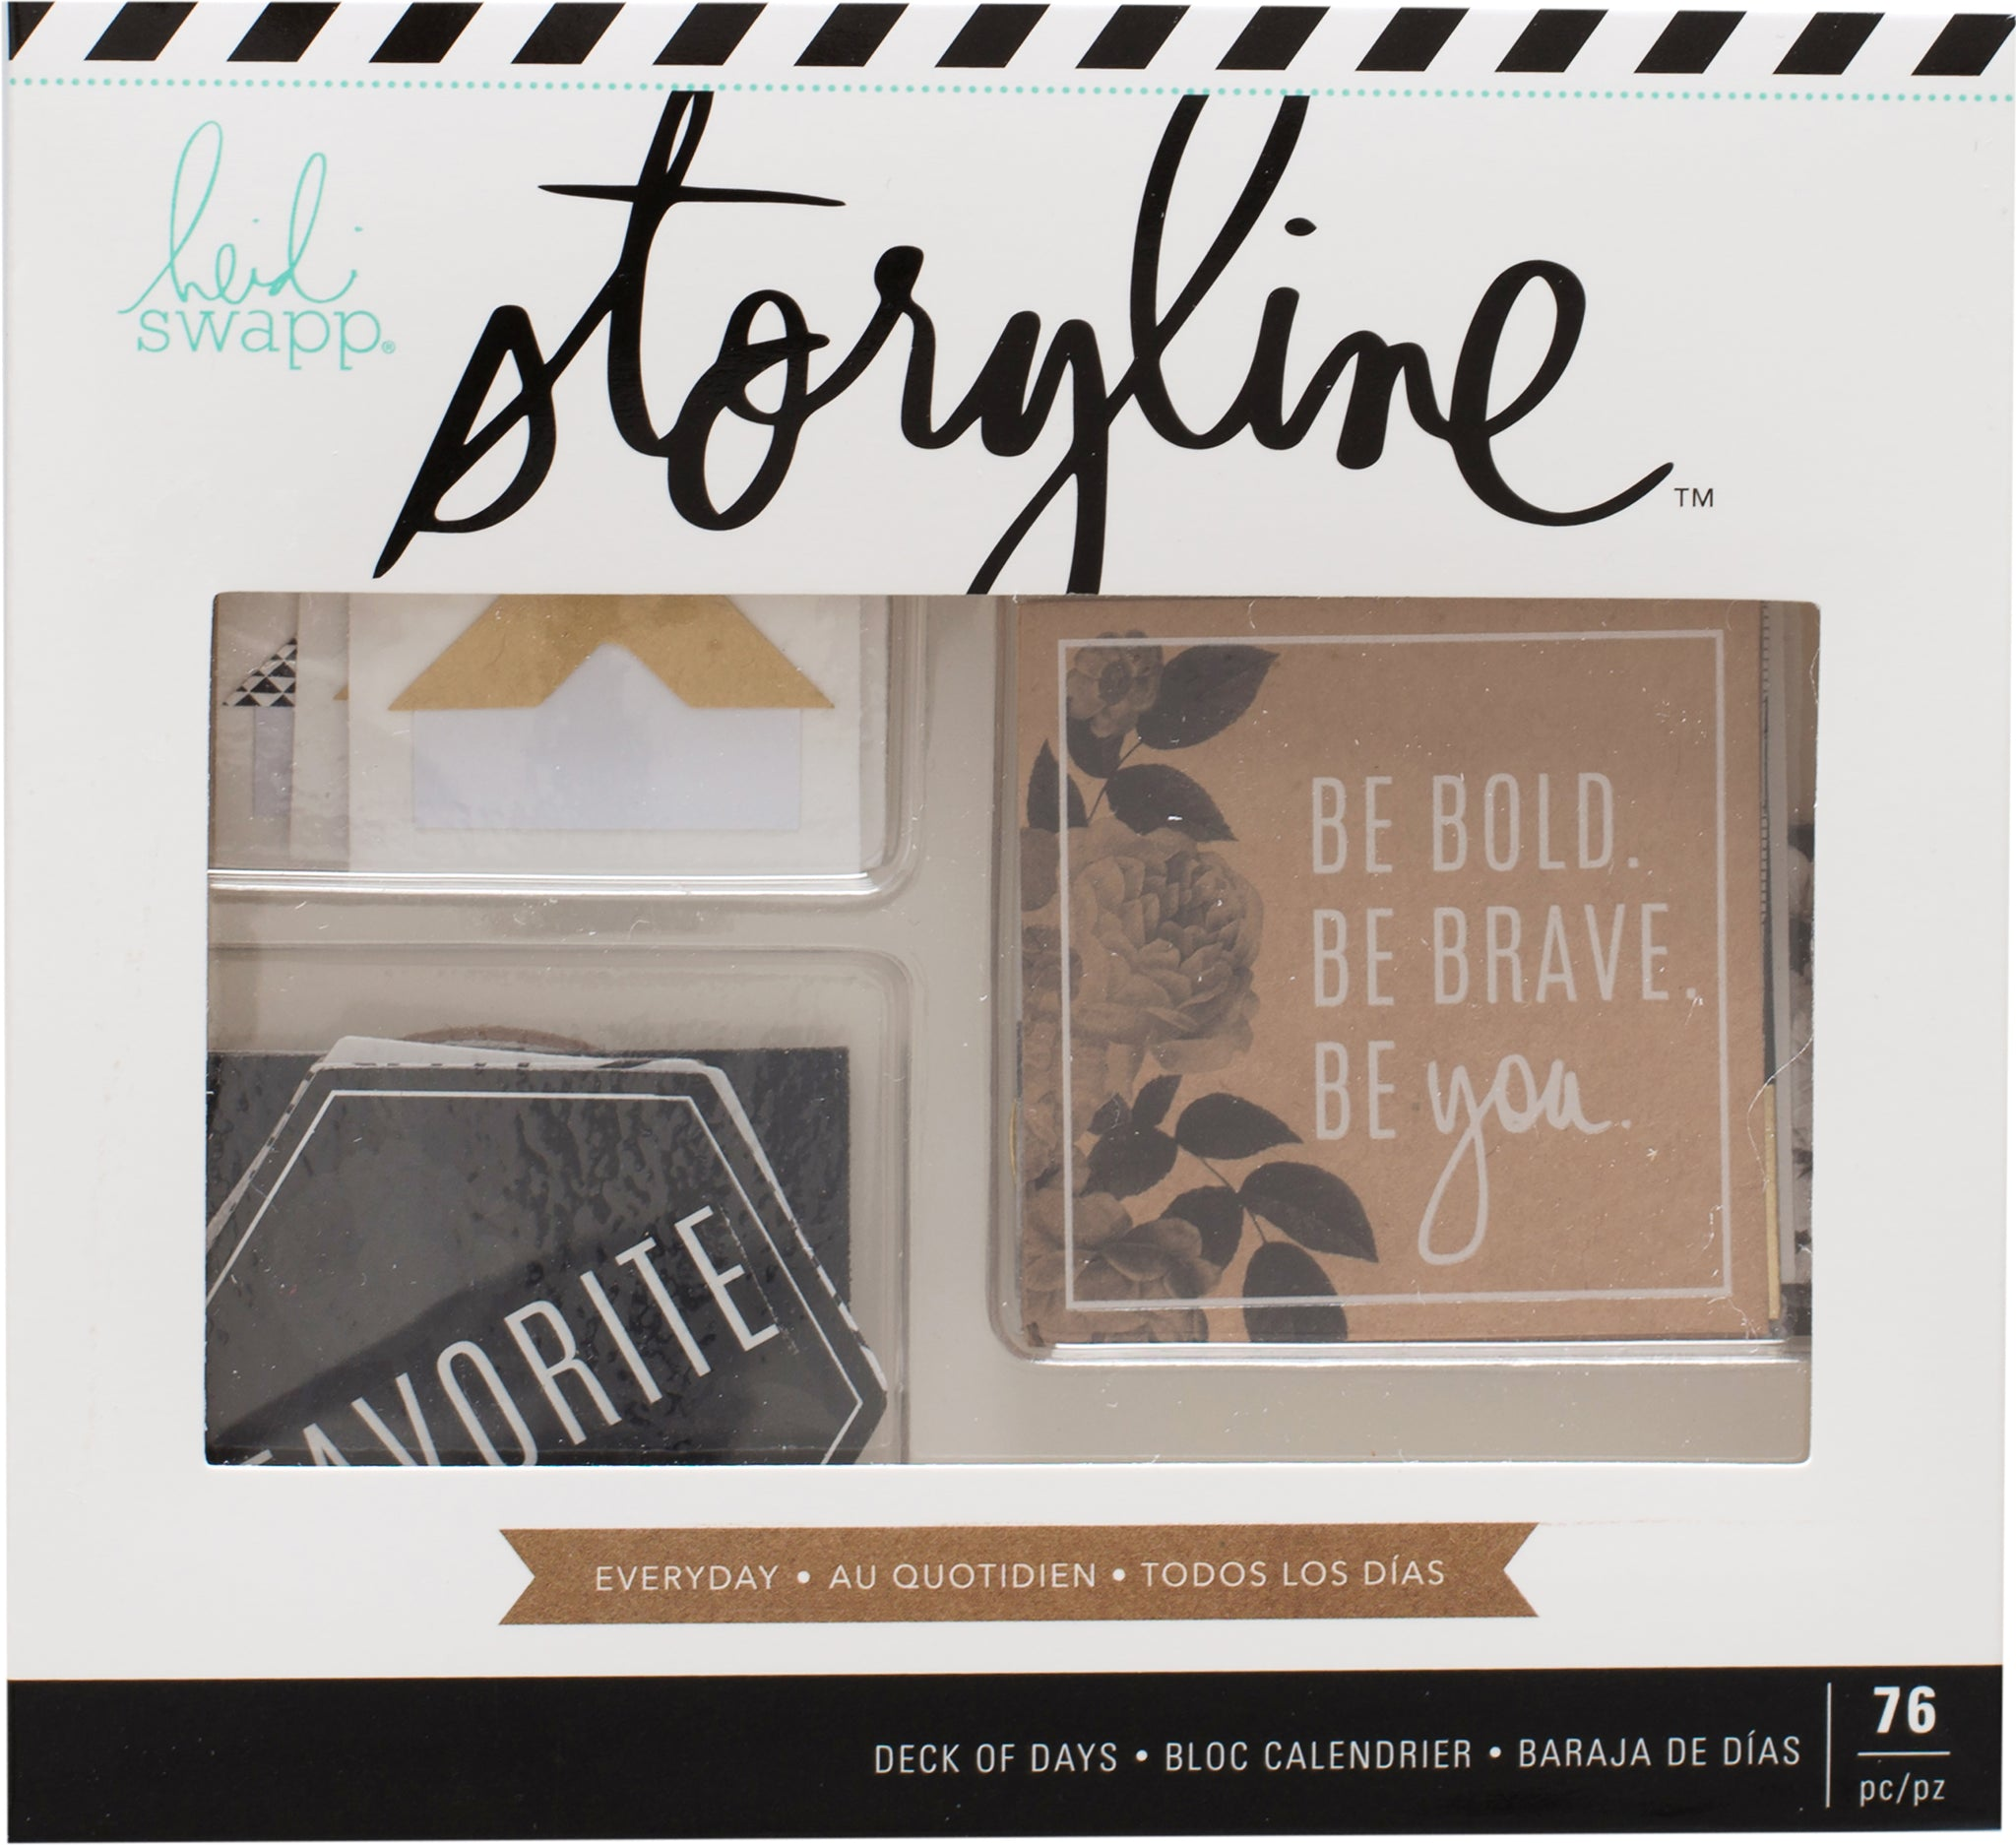 380328 Heidi Swapp Storyline2 Deck Of Days 76/Pkg Everyday